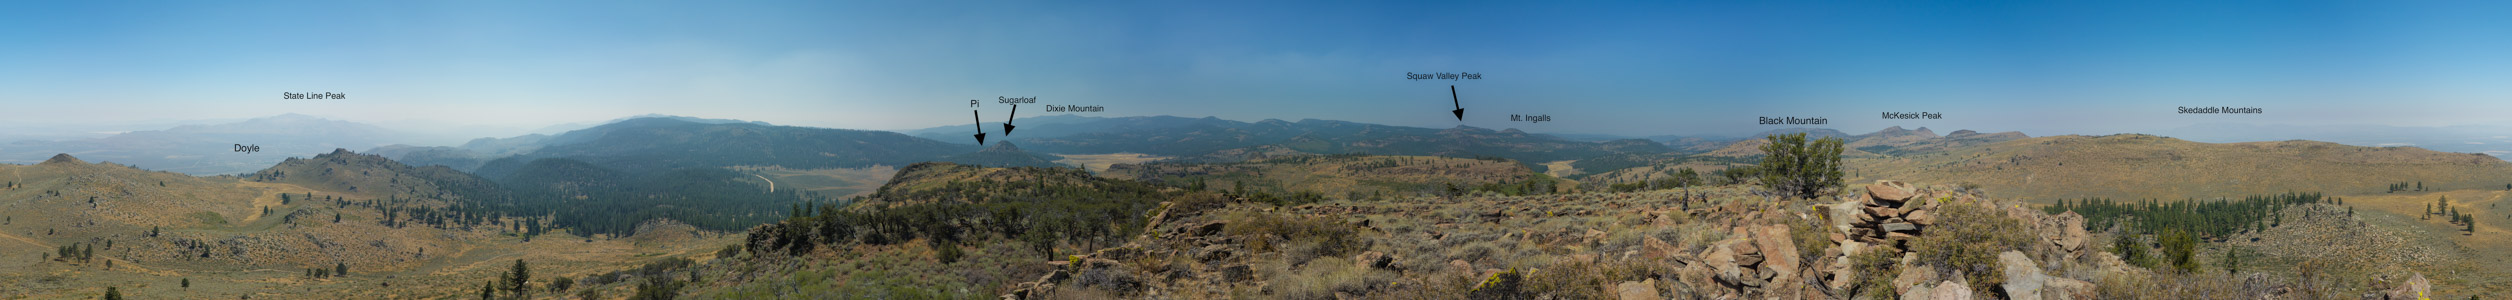 Panorama from Meadow View Peak - 8/2015